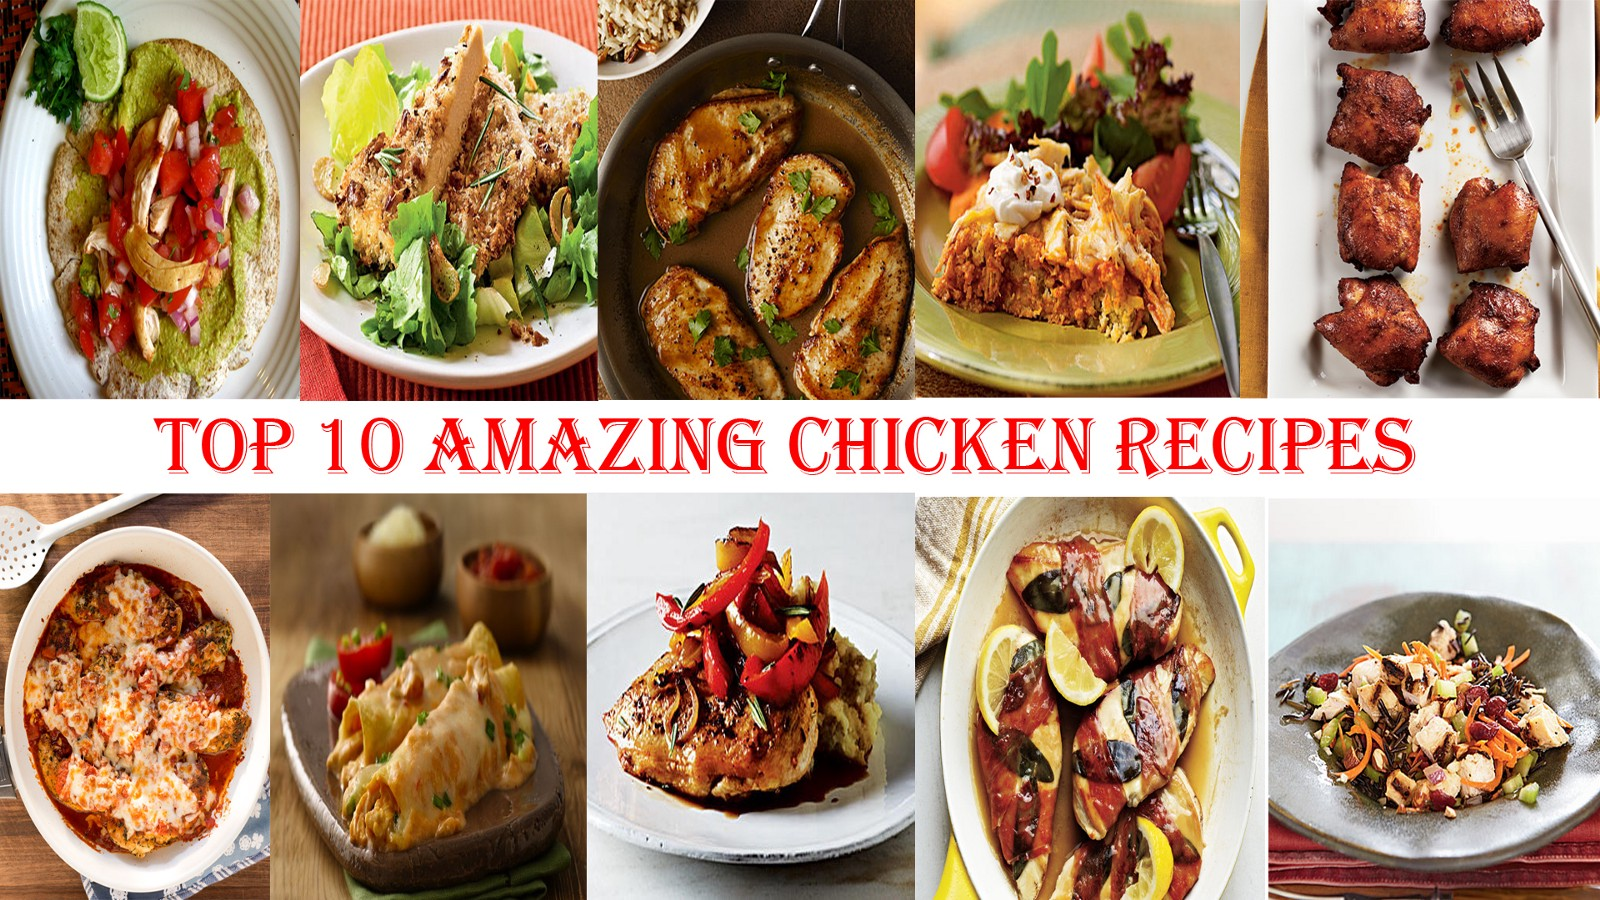 Top 10 Amazing Chicken Recipes for Bodybuilding: Superfoods